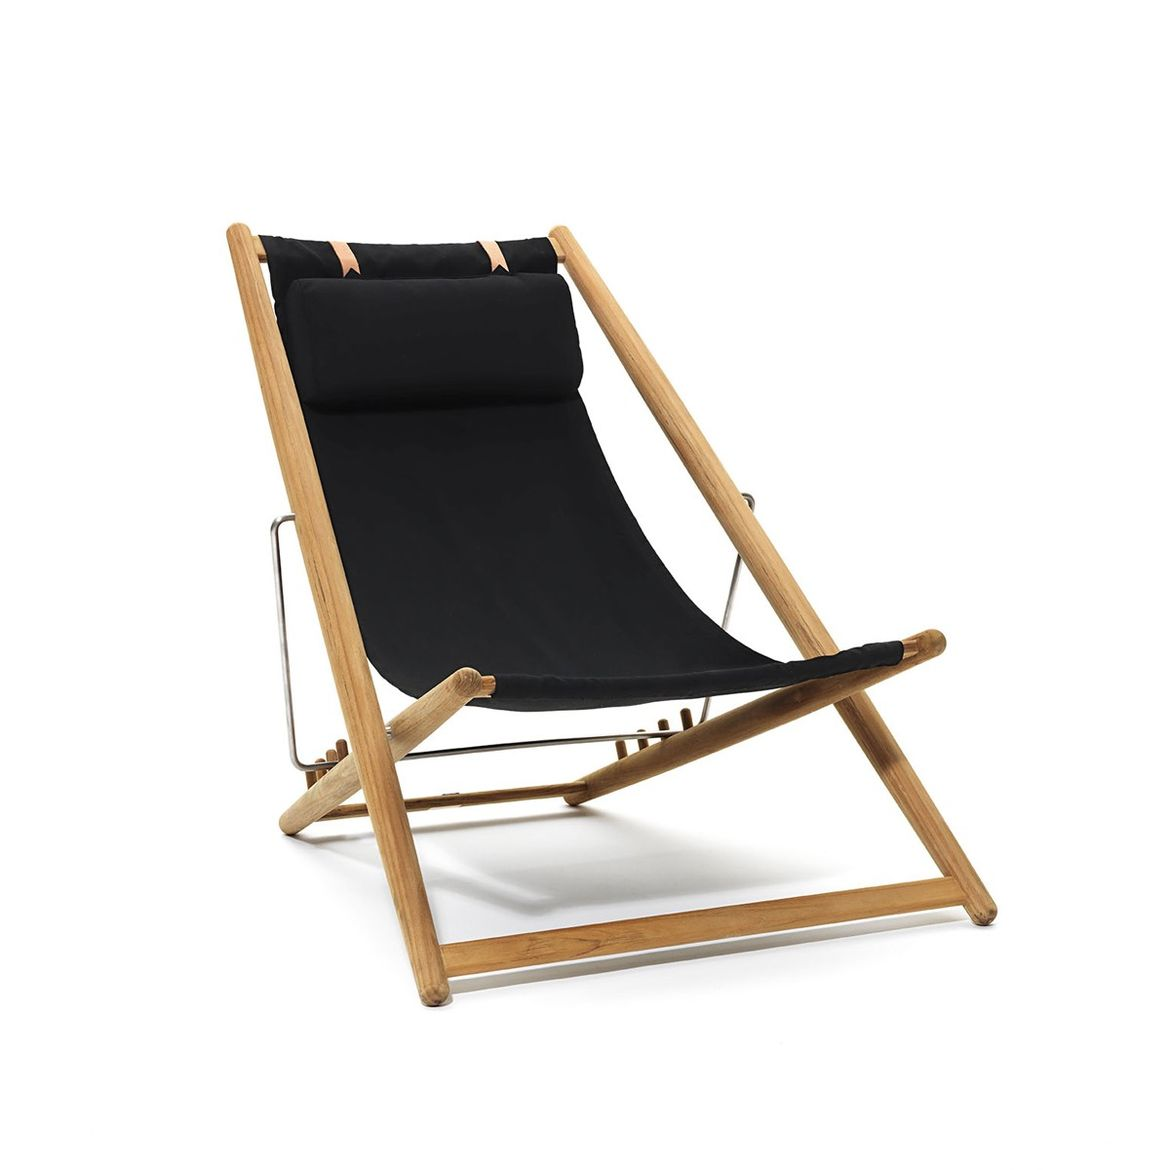 Relaxing lounge chair for indoor and outdoor settings